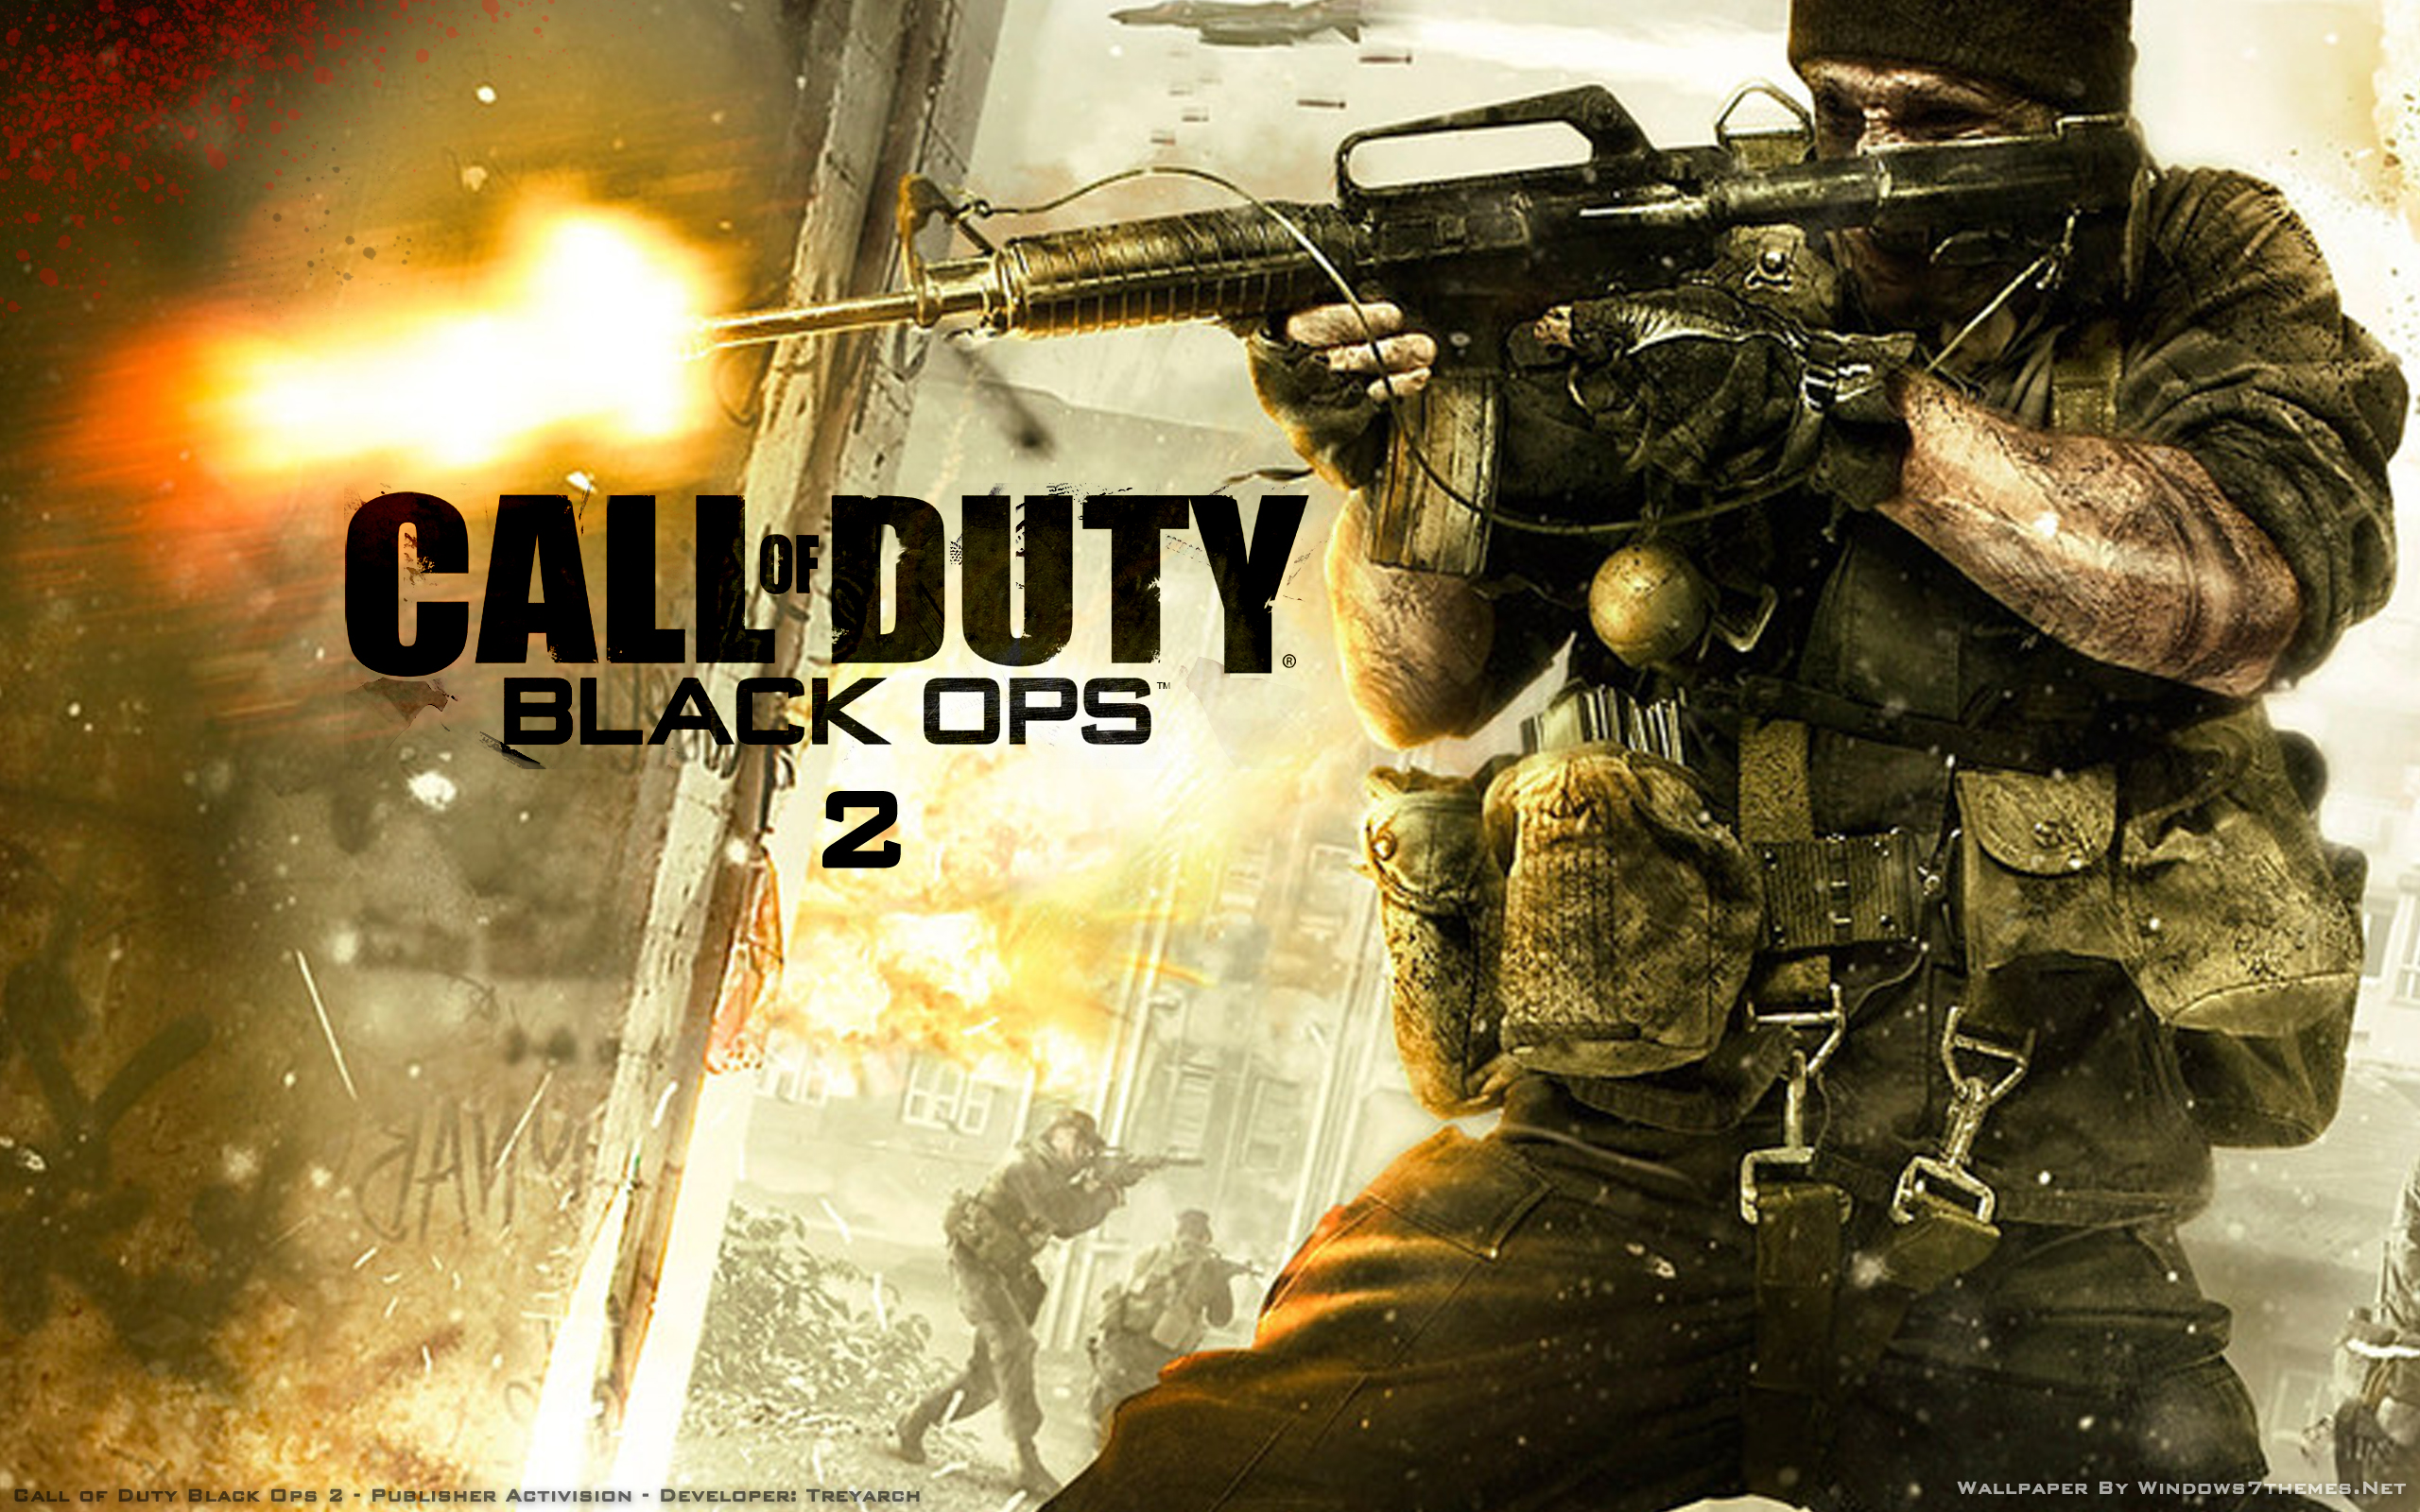 Call Of Duty Bo2 Wallpaper: Black Ops 2 On Black Friday